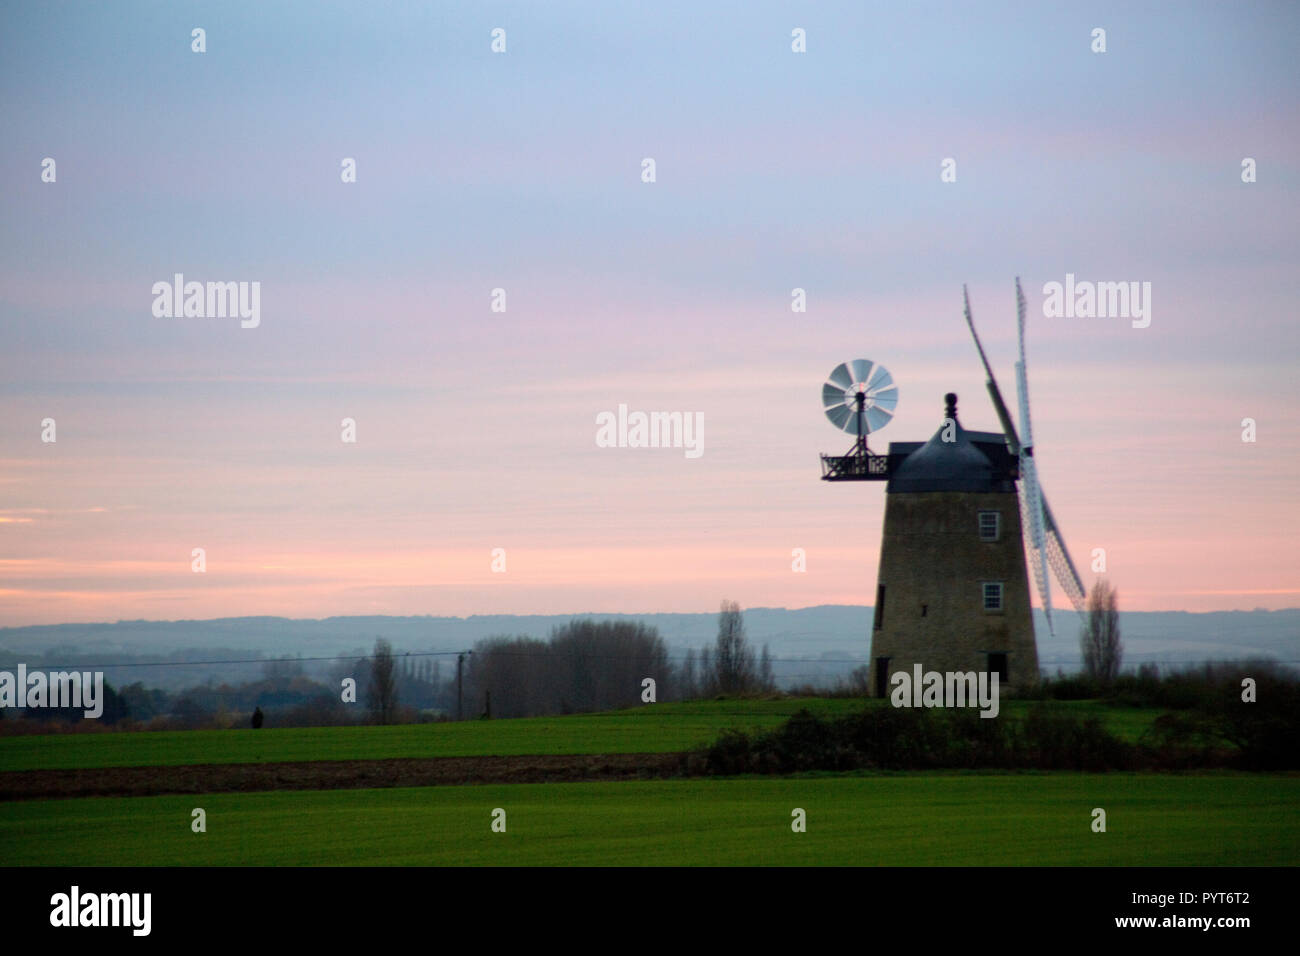 Great Haseley Windmill silhouetted against evening sky at sunset, near Great Milton, Oxfordshire - Stock Image